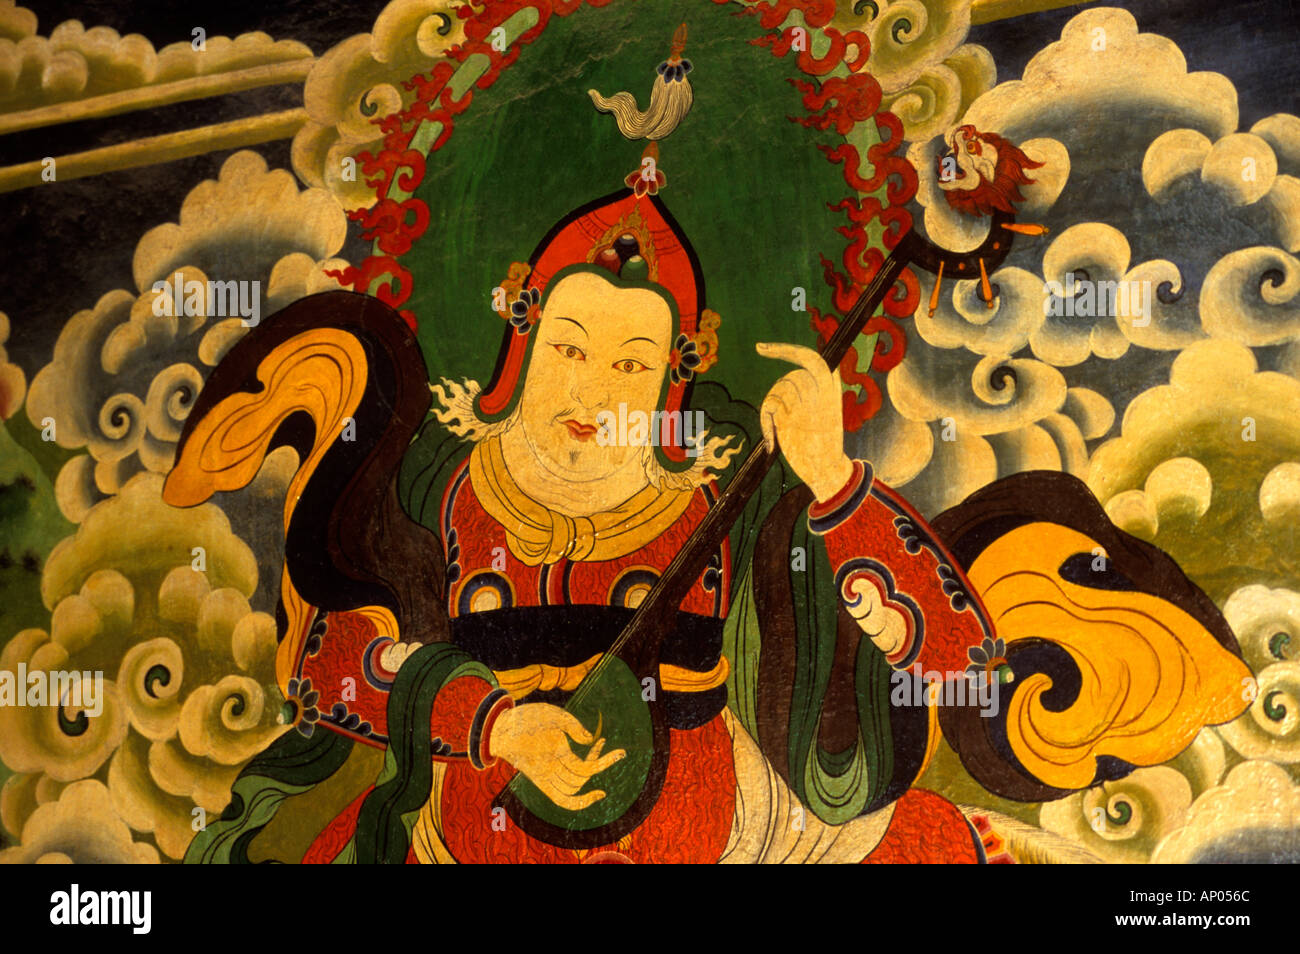 A painting of LING KESAR one of the GAURDIANS OF THE FOUR DIRECTIONS at the MILAREPA CAVE near NYALAM TIBET - Stock Image